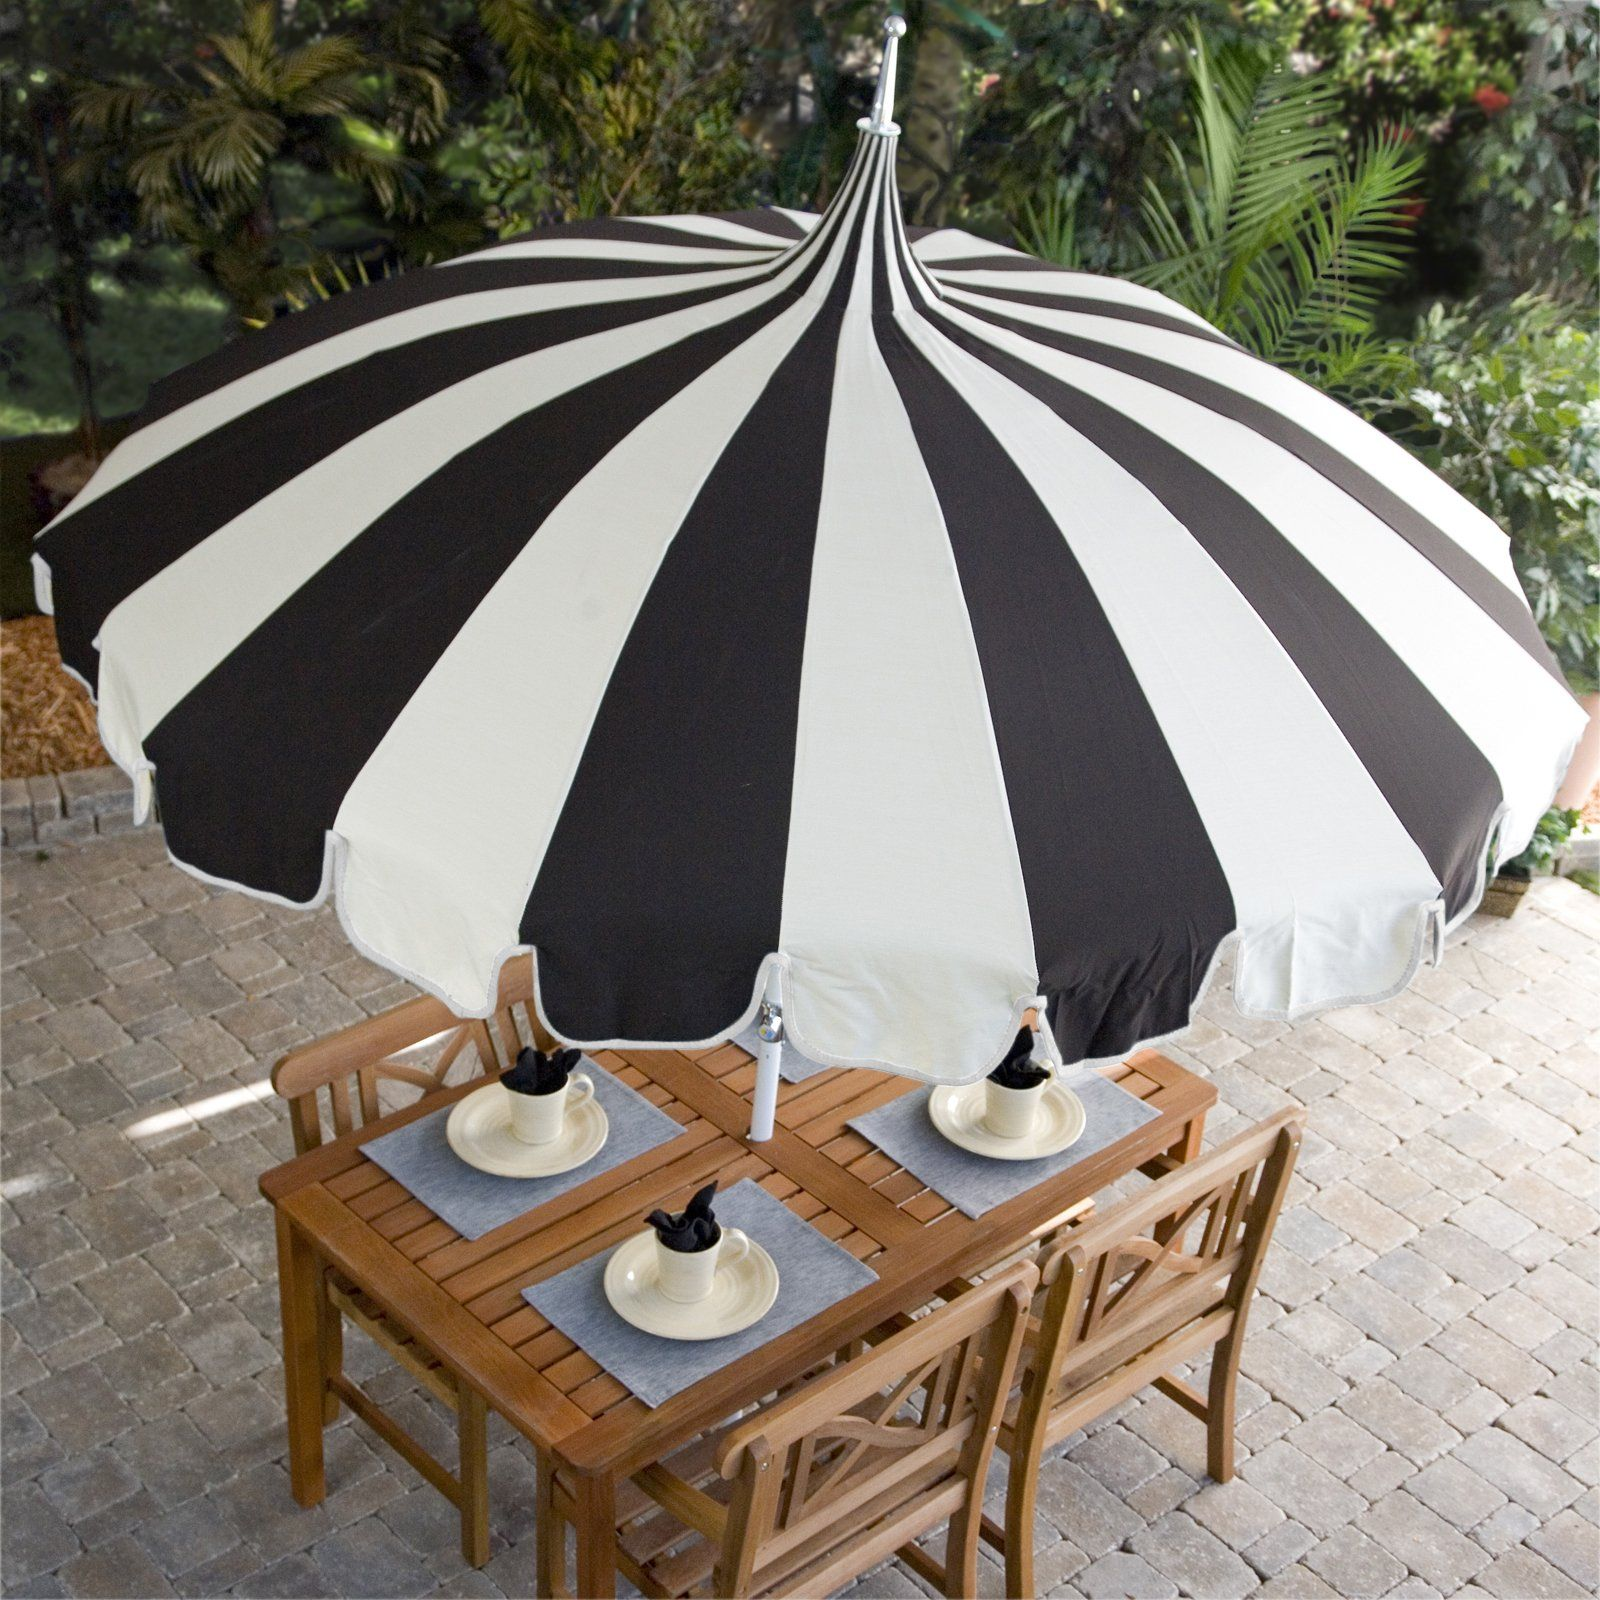 Marvelous Have To Have It. Pagoda 8.5 Ft. Patio Umbrella By California Umbrella  $469.99